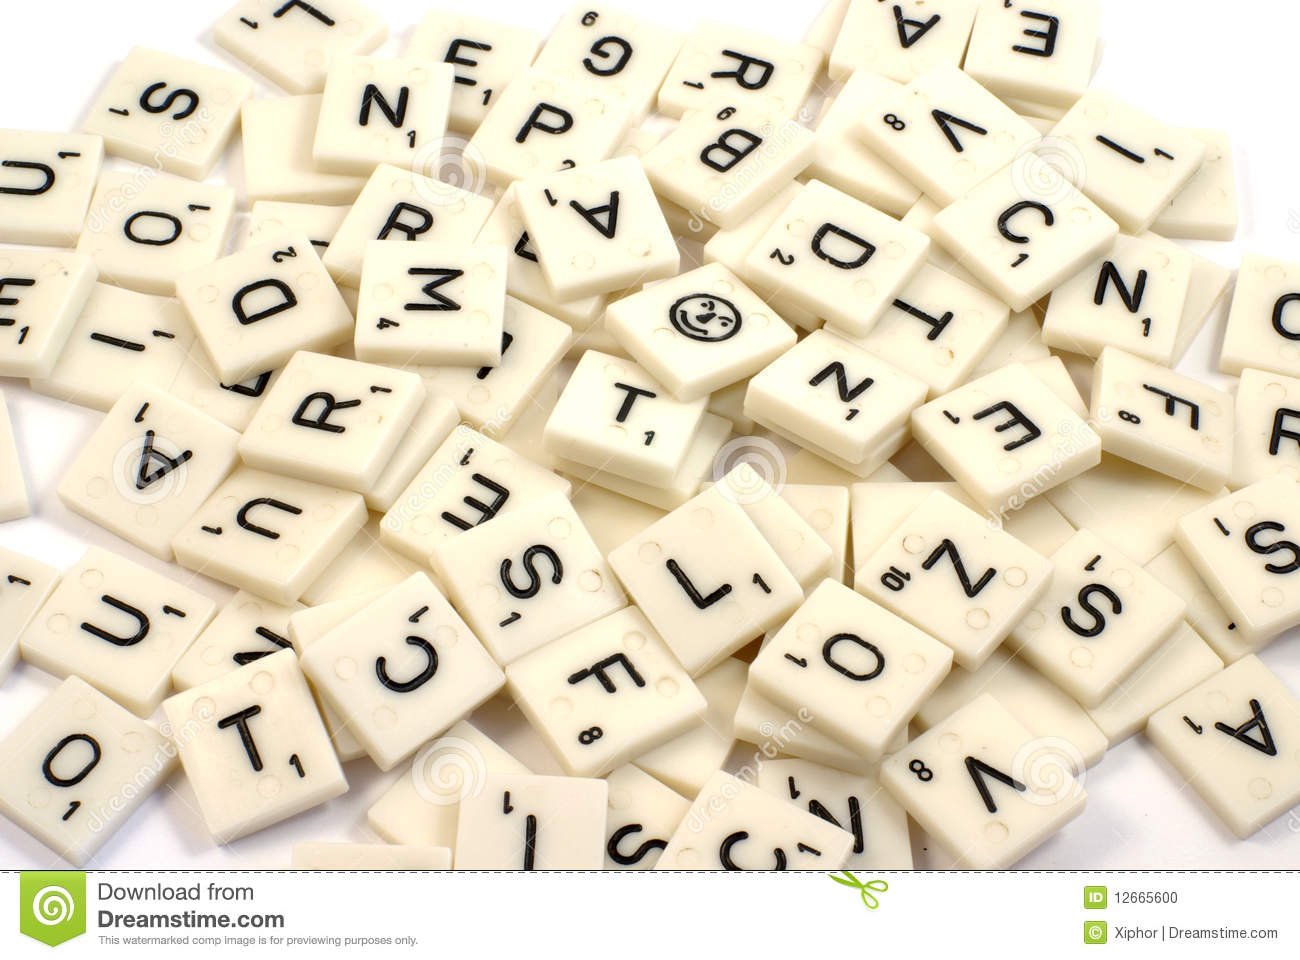 5 letter words ending in el pile of scrabble pieces stock photo image of ideas grid 16262